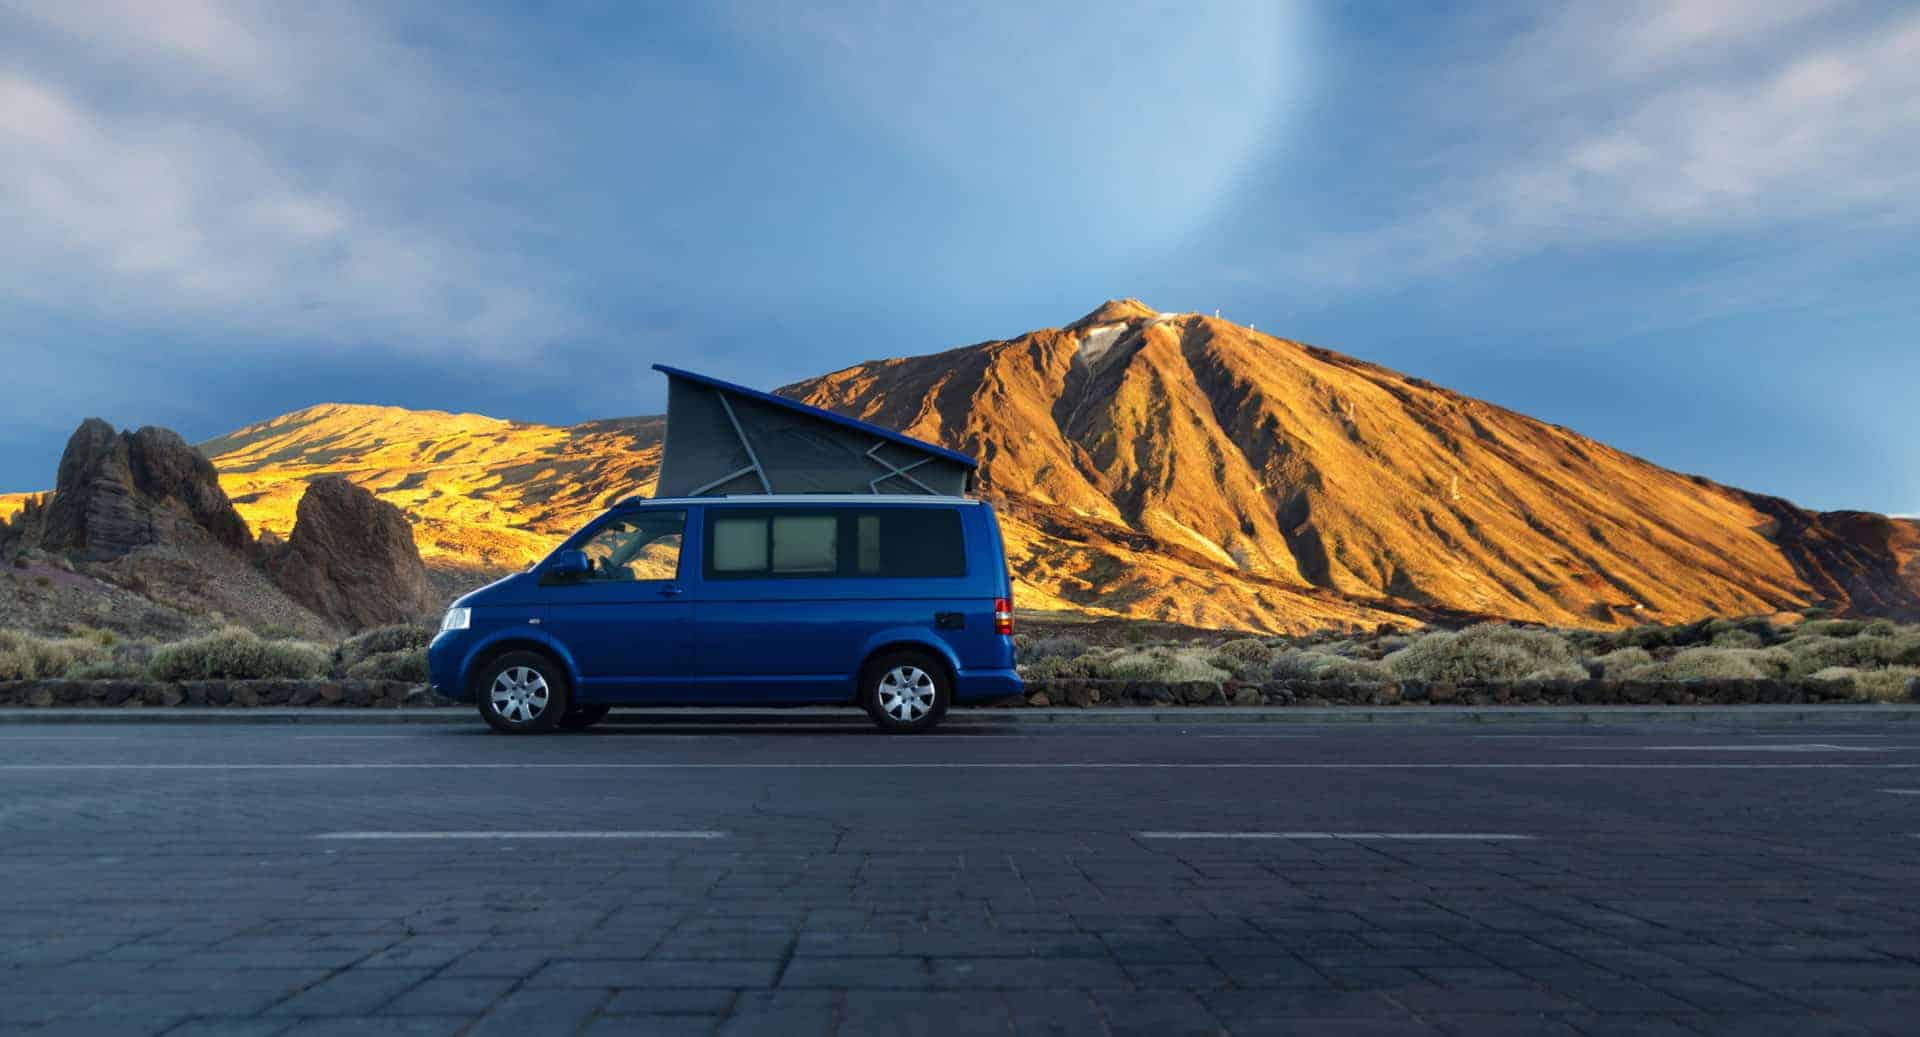 campervan by mountain